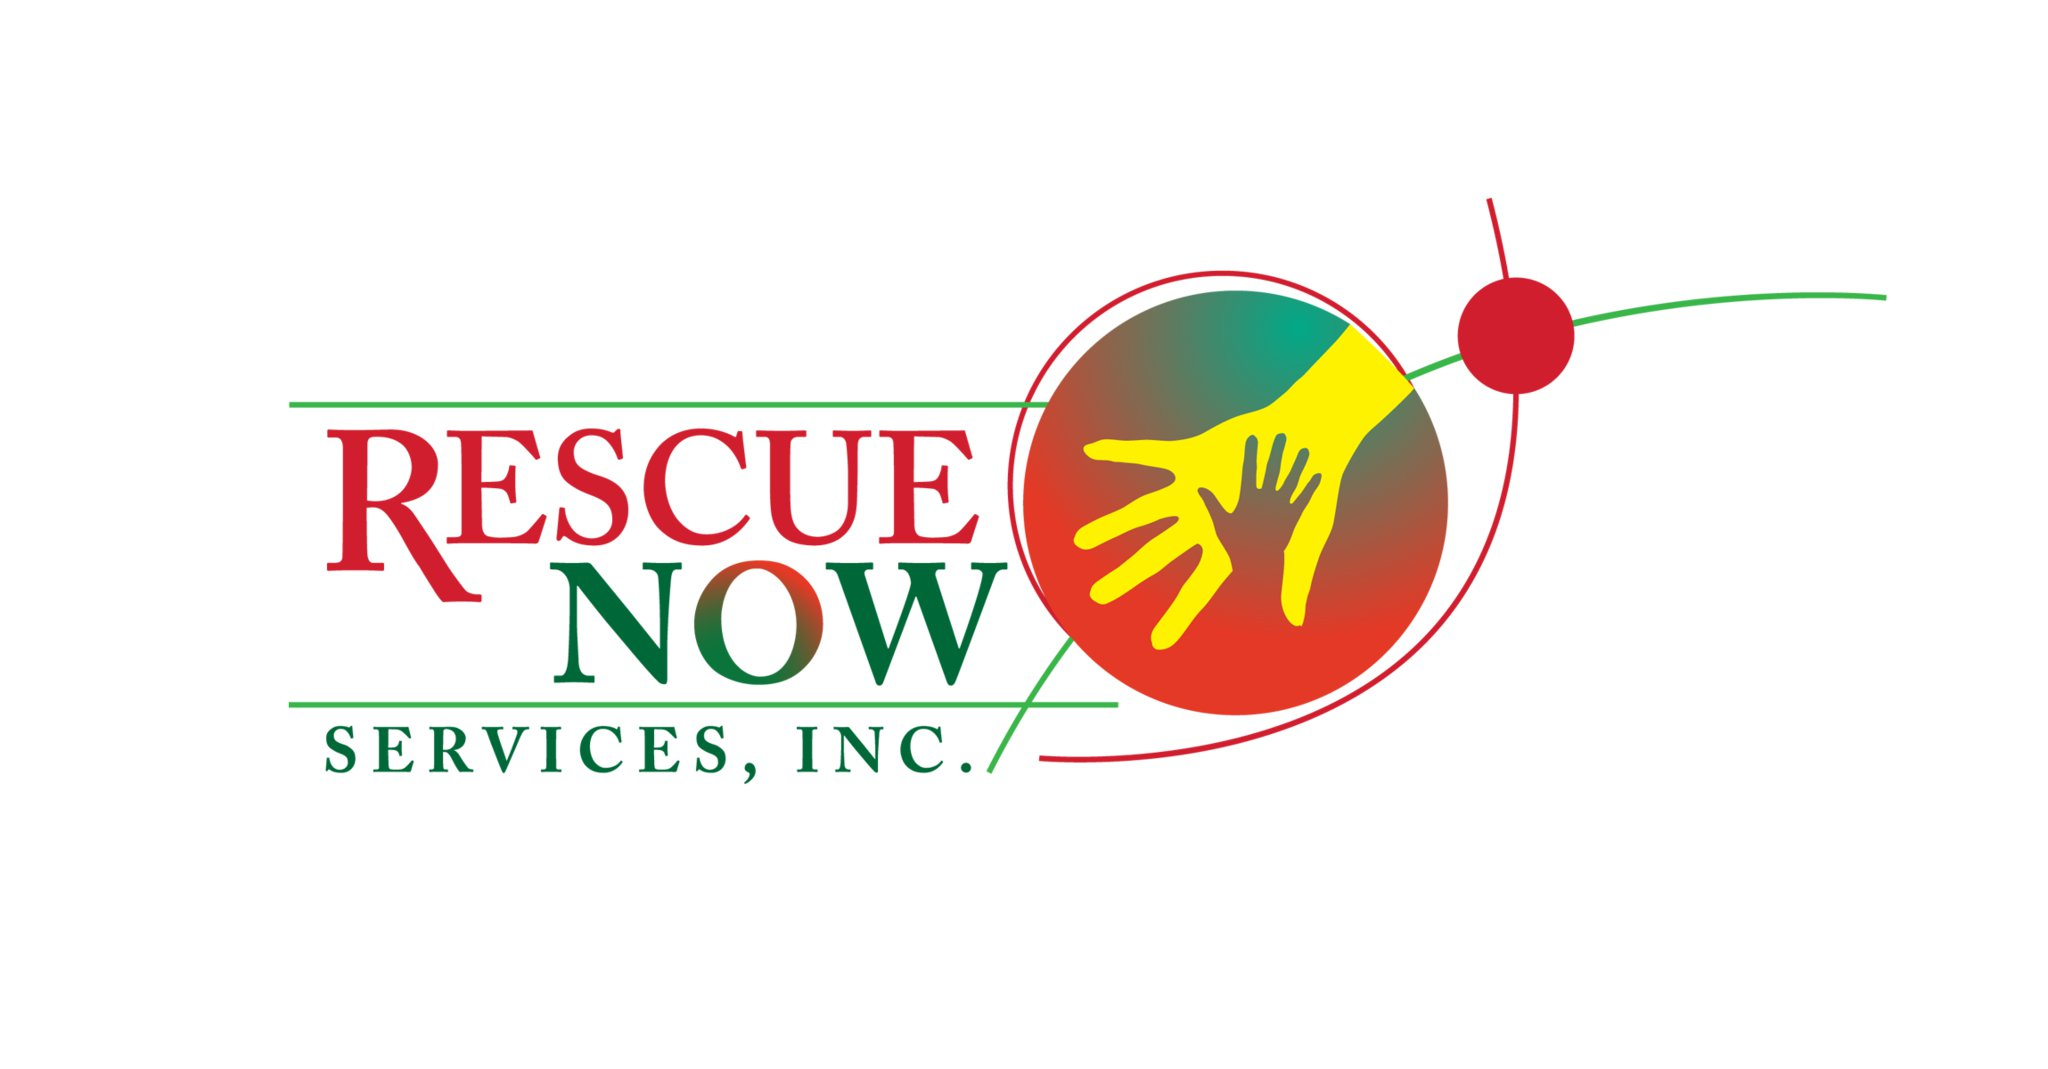 Rescue Now Services